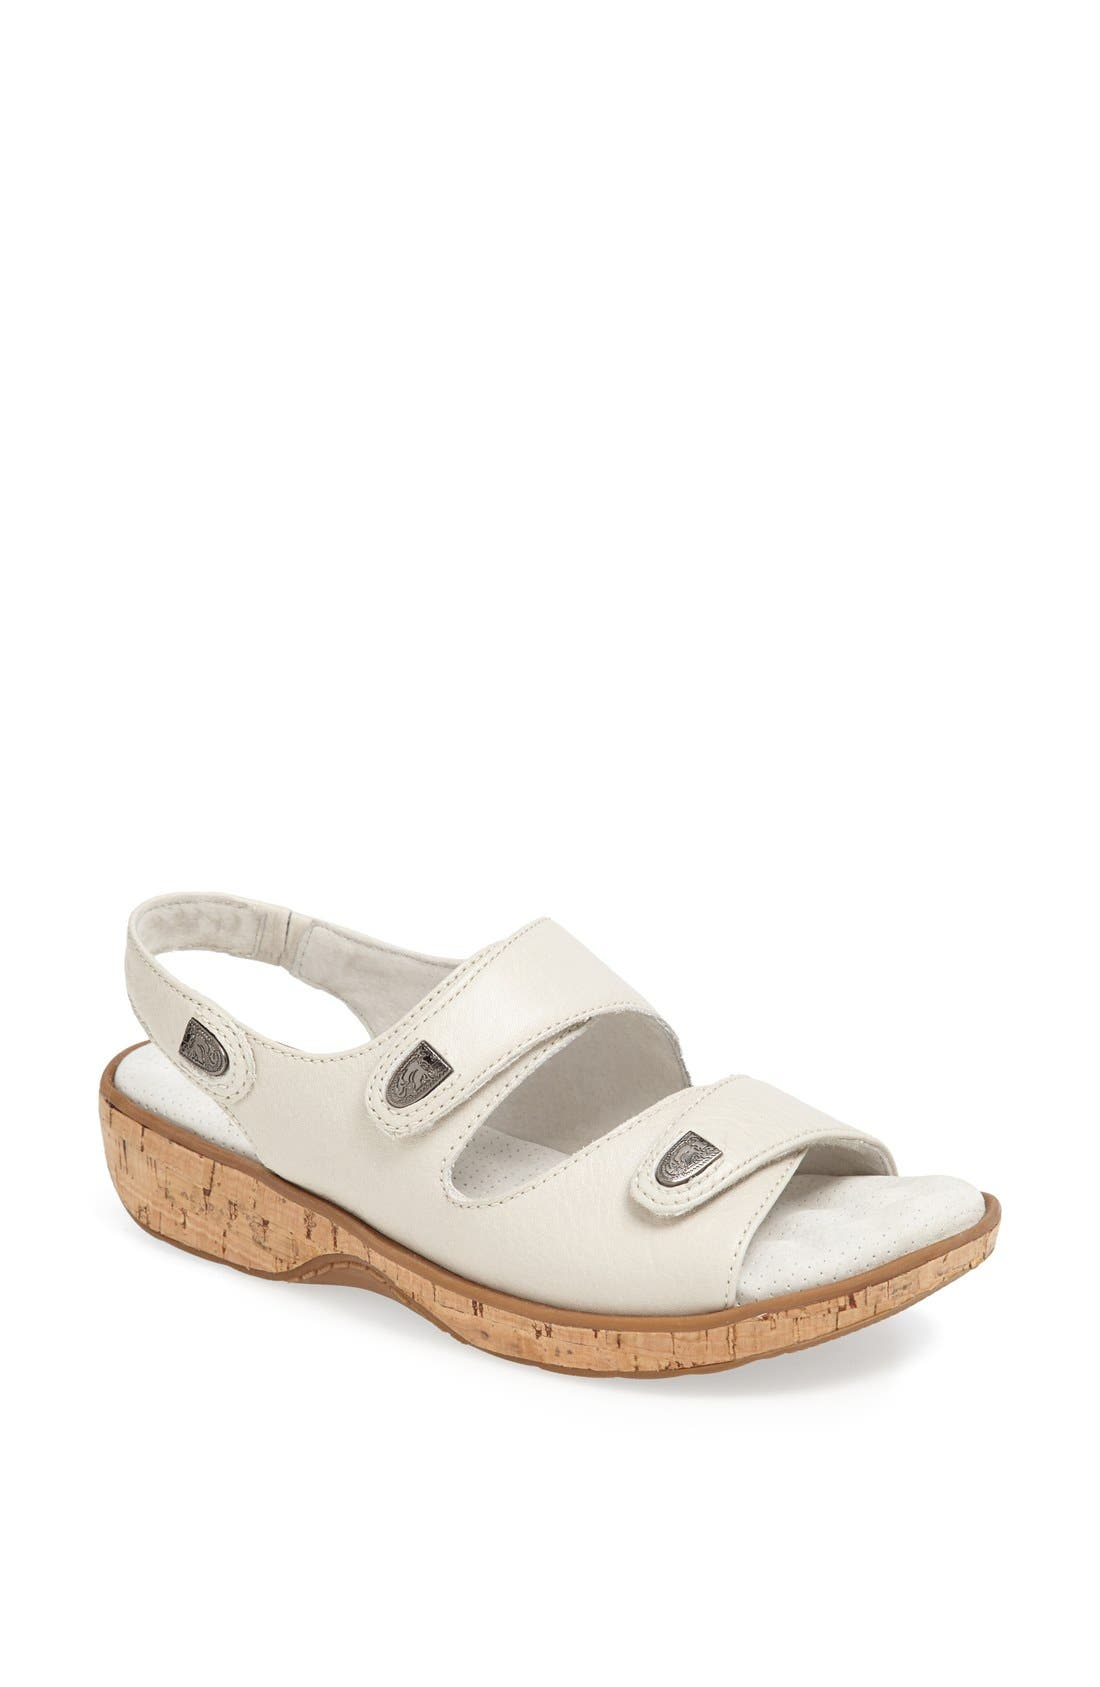 SOFTWALK<SUP>®</SUP>, 'Bolivia' Sandal, Main thumbnail 1, color, OFF WHITE